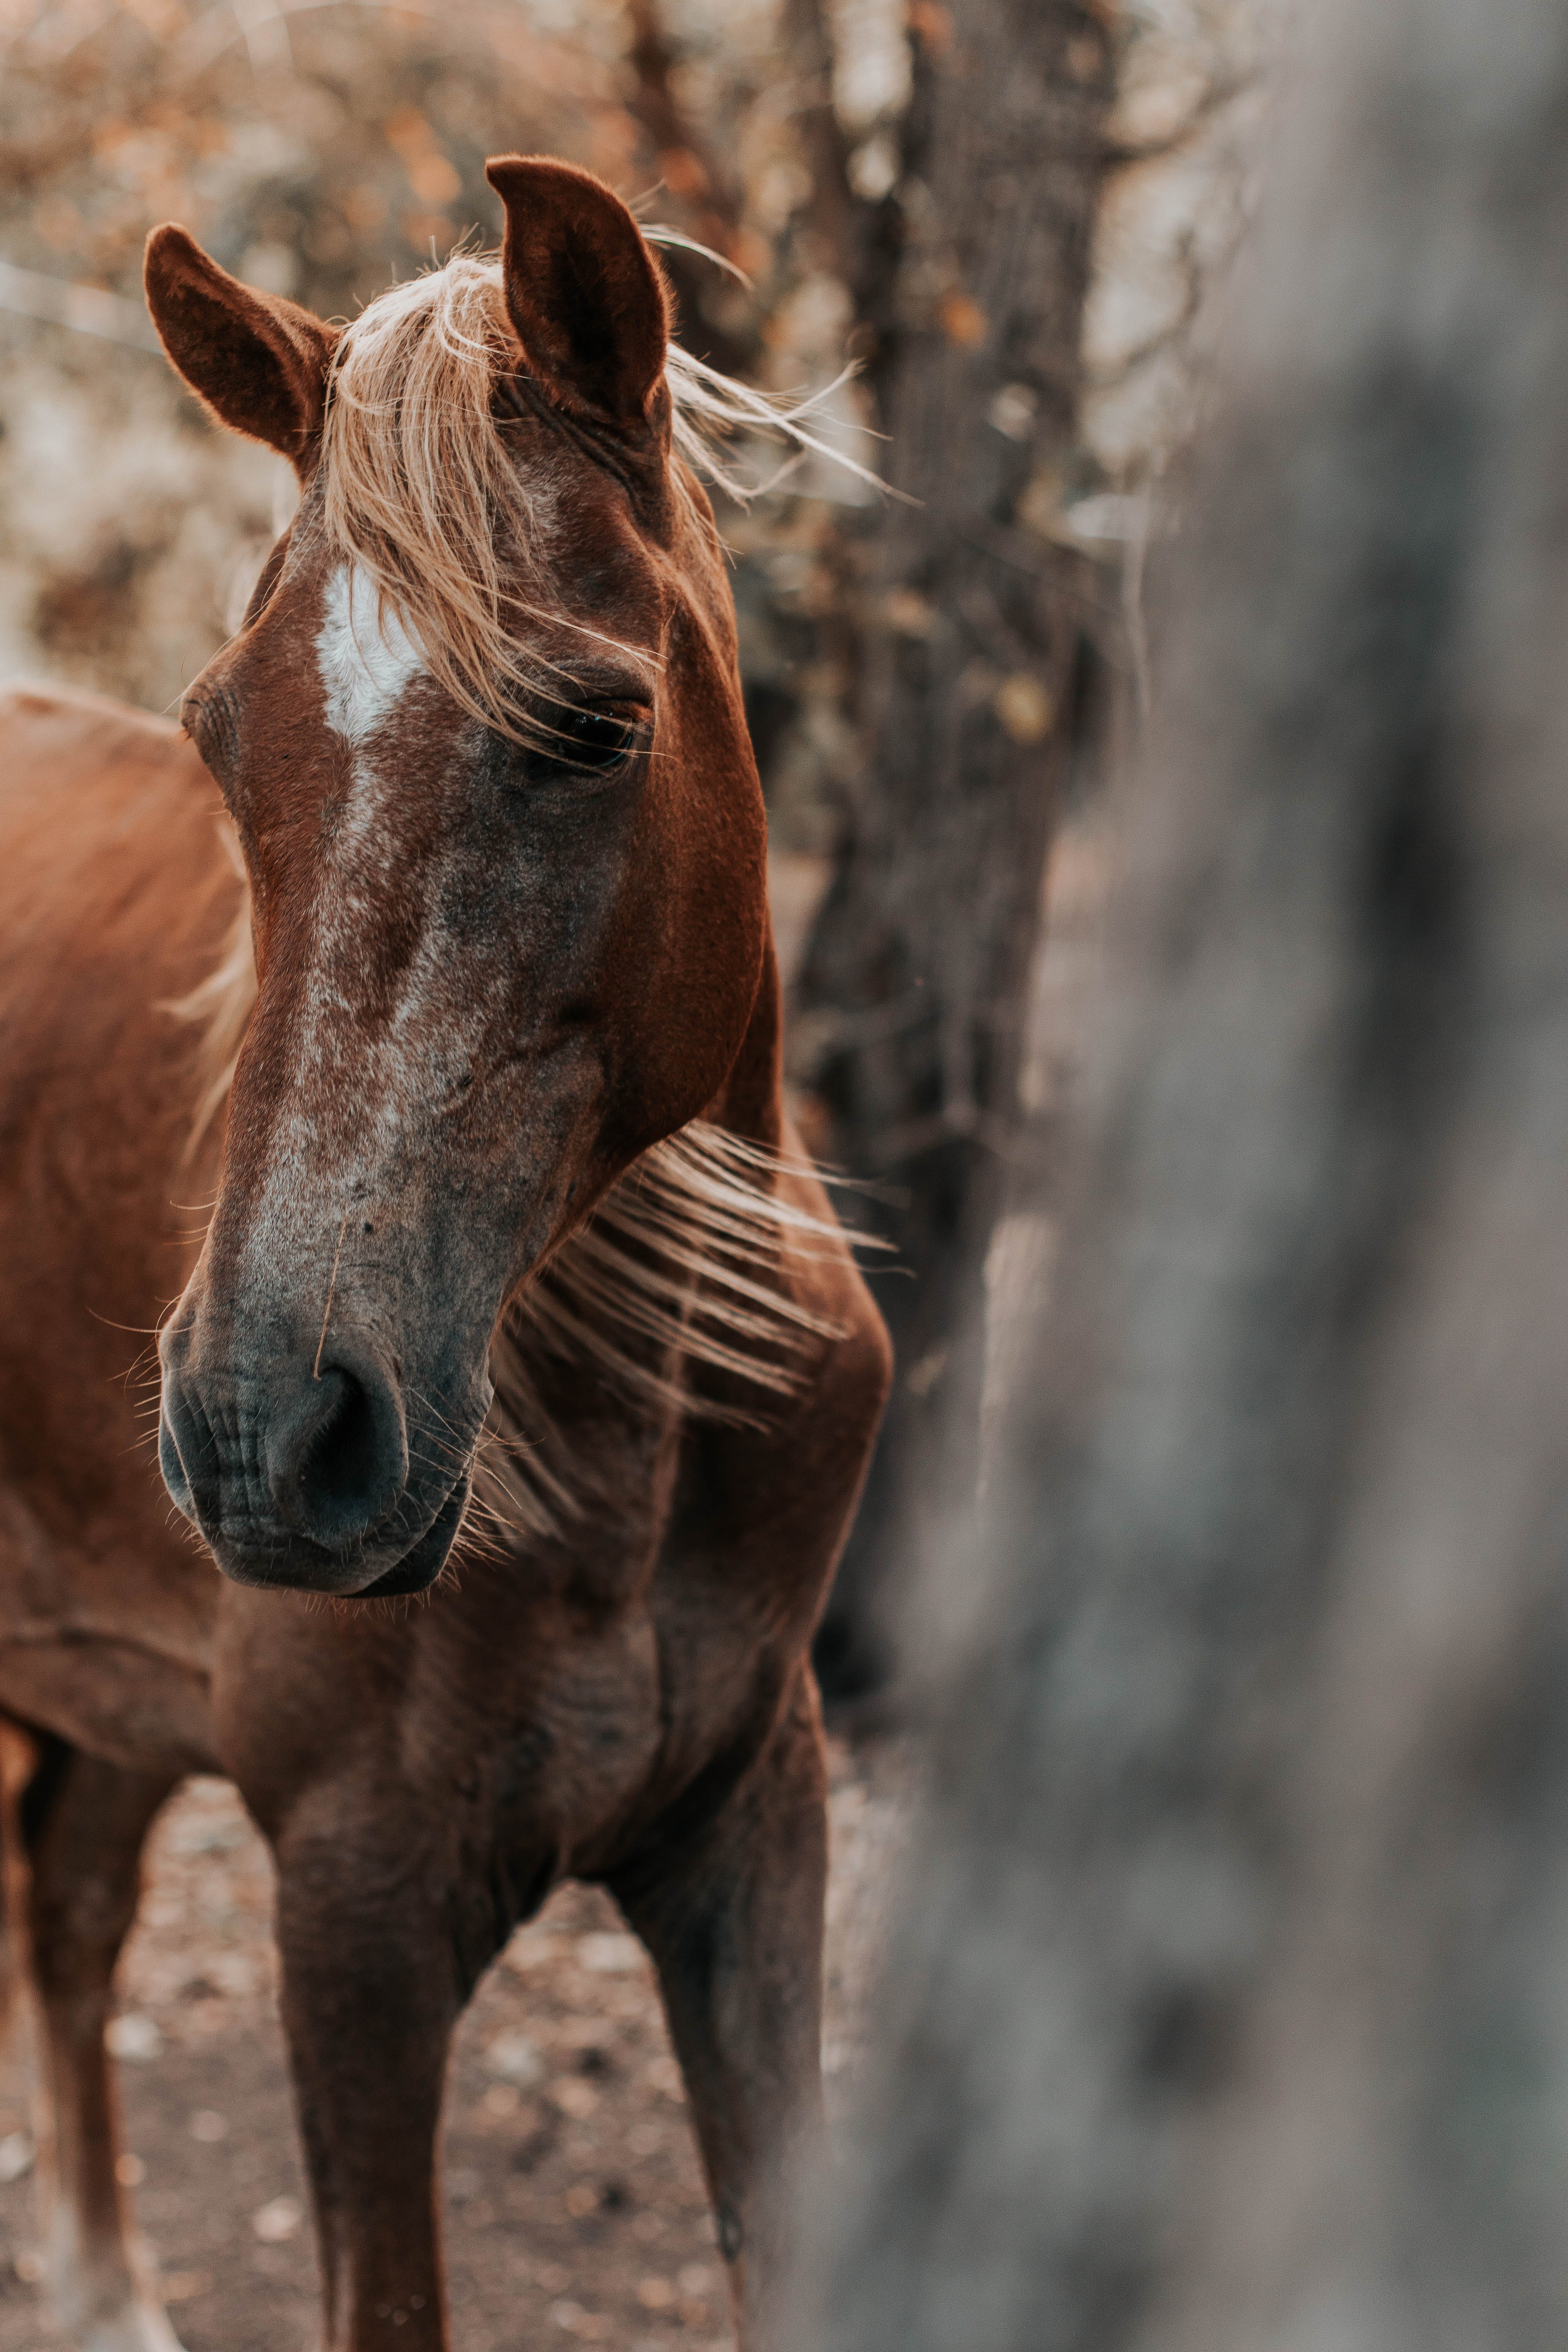 Selective Focus Photo of Horse